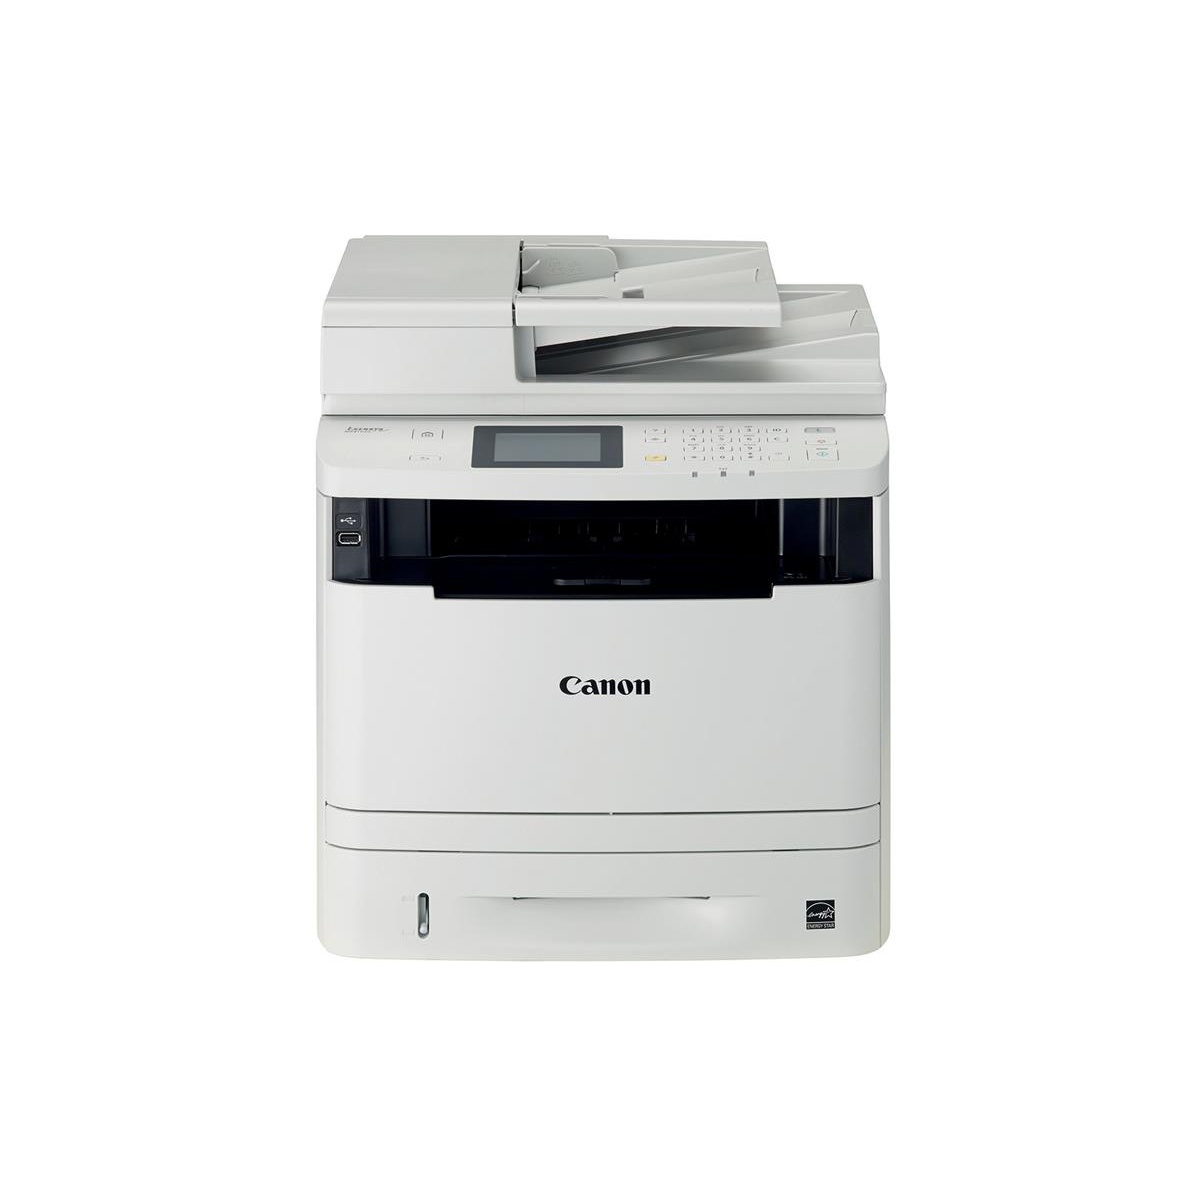 Canon I-SENSYS MF411dw Multifunctional A4 Laser Printer Ref 0291C049AA